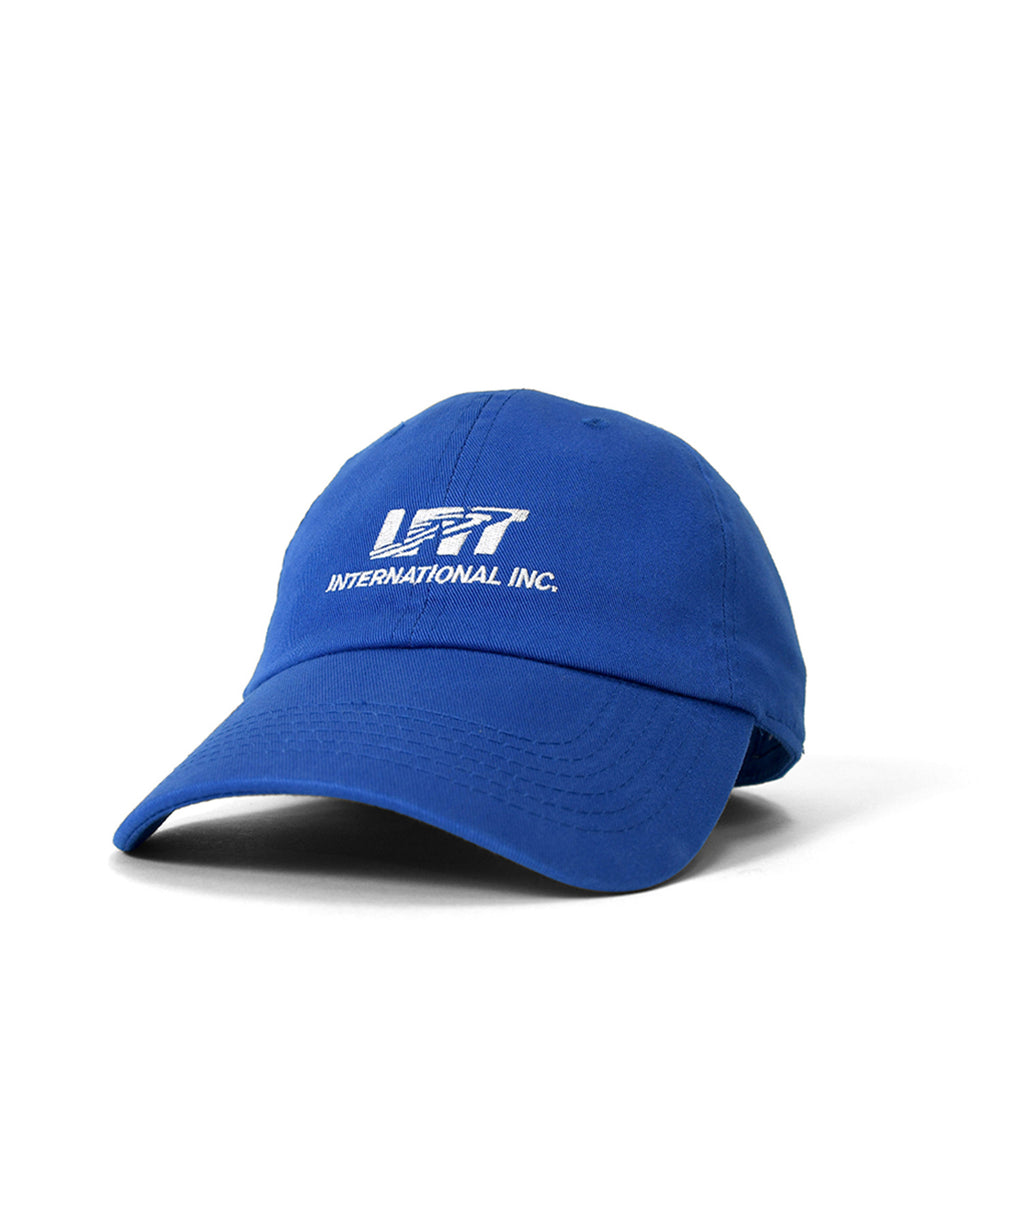 LA201402 LFYT INTERNATIONAL, INC. DAD HAT BLUE